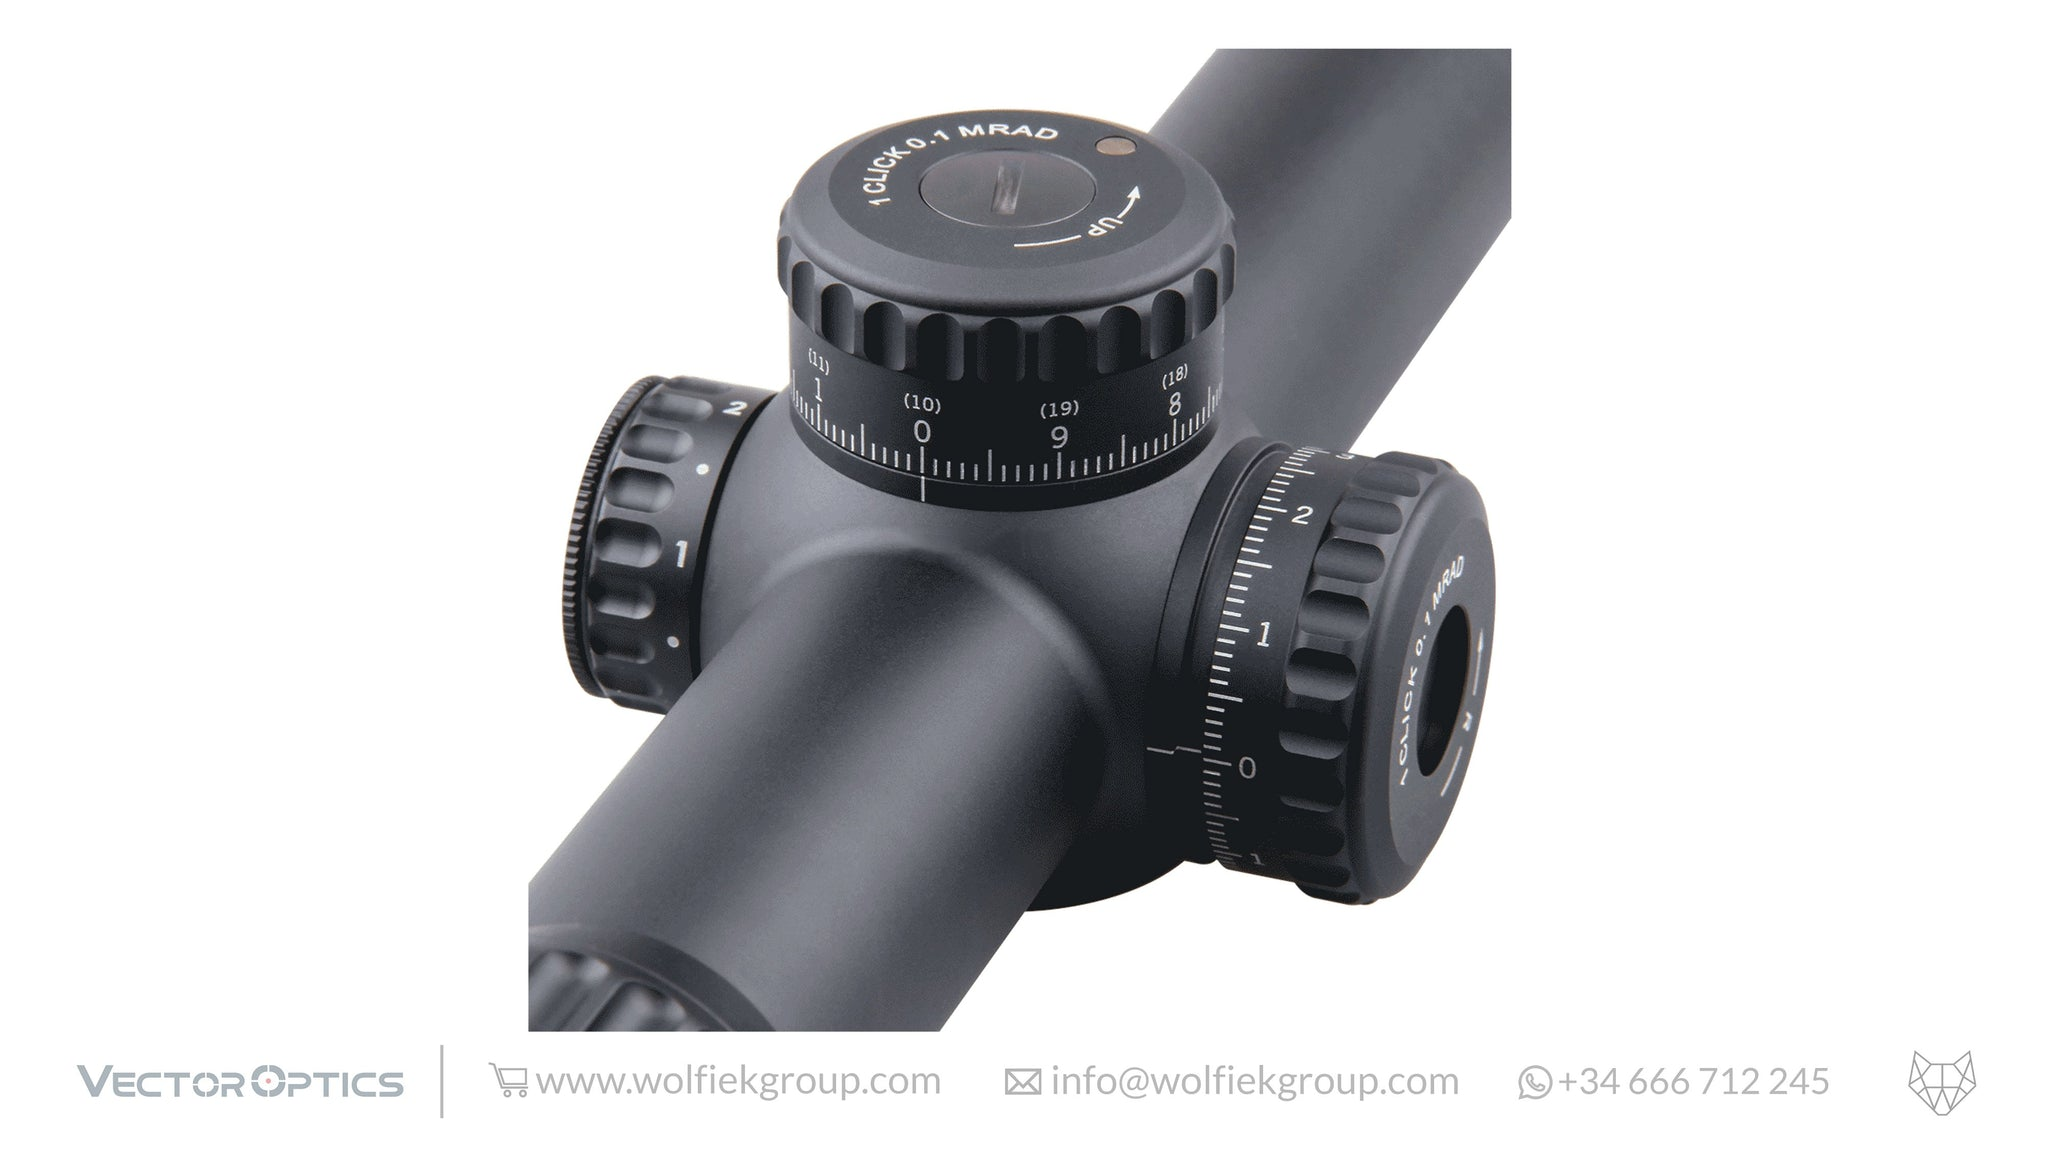 VECTOR OPTICS <br>CONTINENTAL 34 <br>1-6x28 FFP